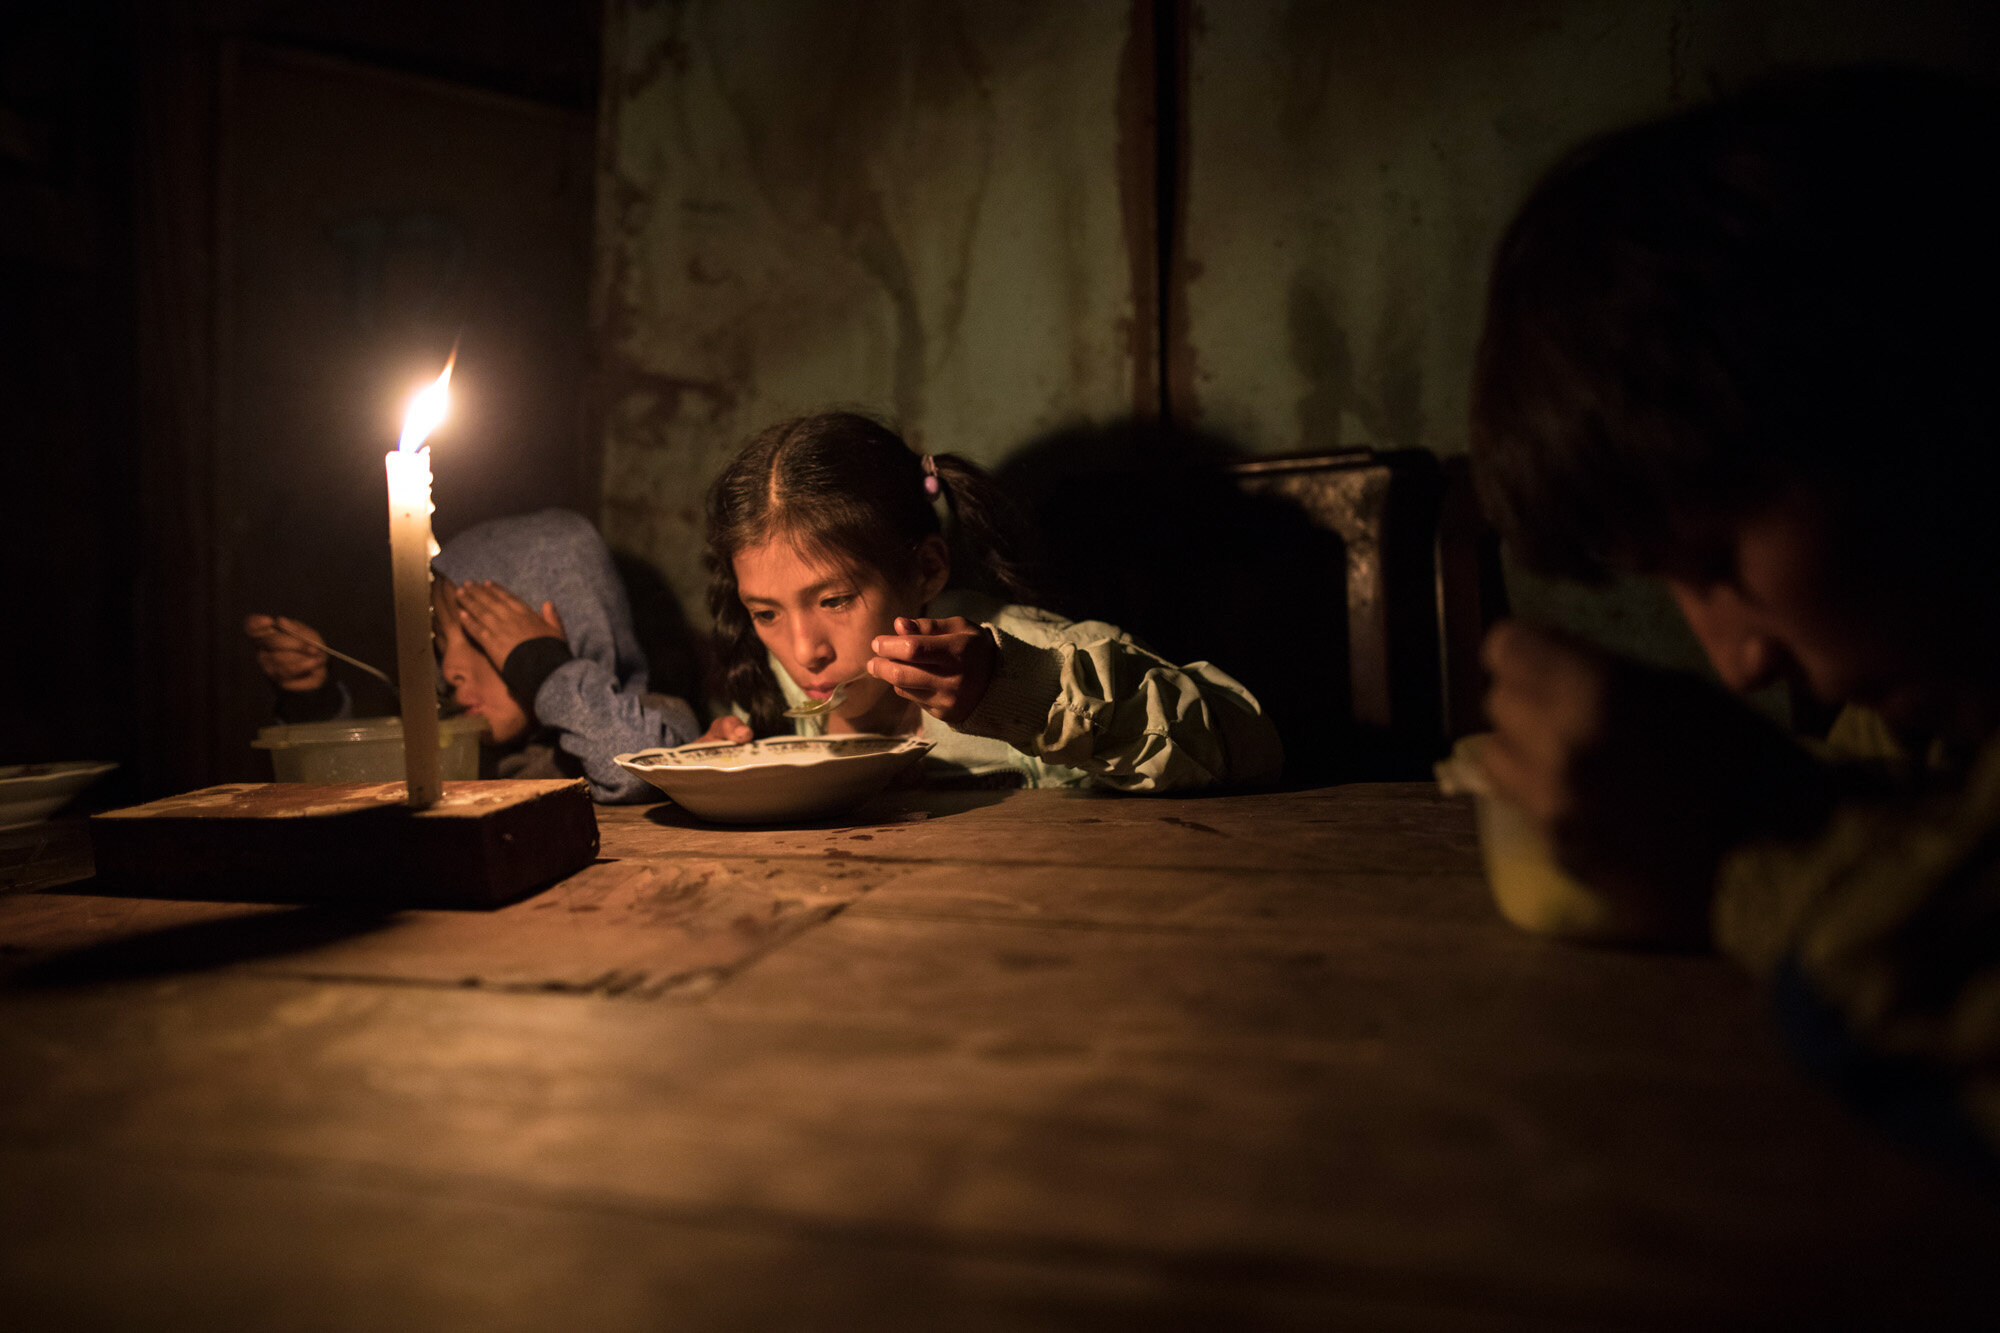 Siblings, from left, Estiben, Estefany and Javier Aquino eat dinner illuminated by a candle in their home in the Nueva Esperanza neighborhood, which has no access to electricity, in Lima, Peru, on June 8, 2020. (AP Photo/Rodrigo Abd)